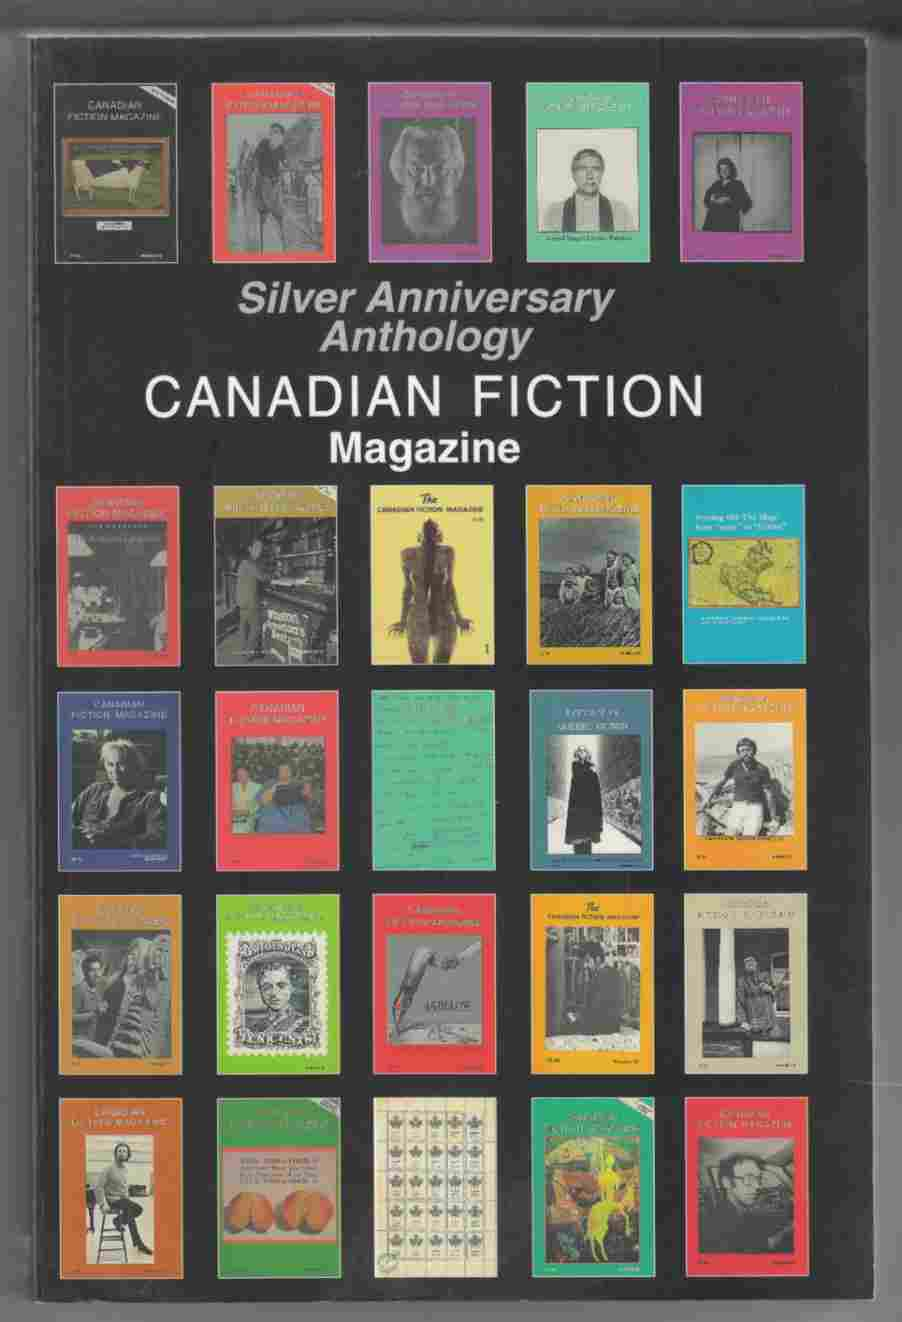 Image for The Best of Canadian Fiction Magazine Silver Anniversary Anthology